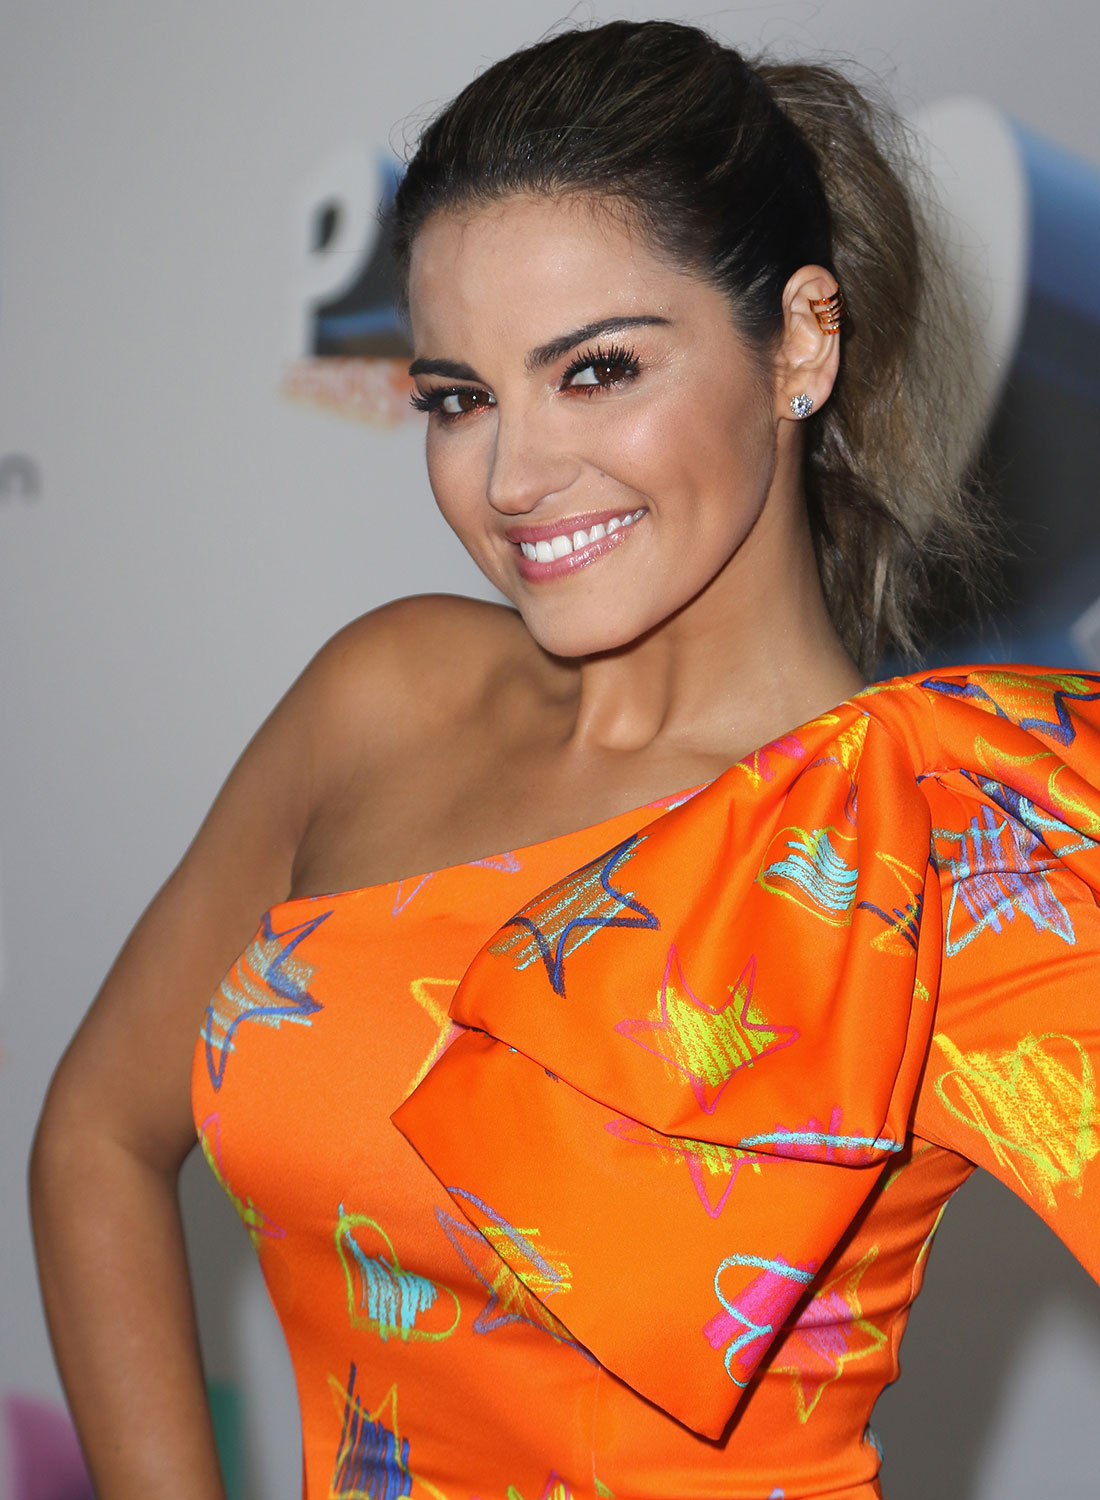 Get the Look: Maite Perroni's Naturally Flushed Beauty at Premios Juventud